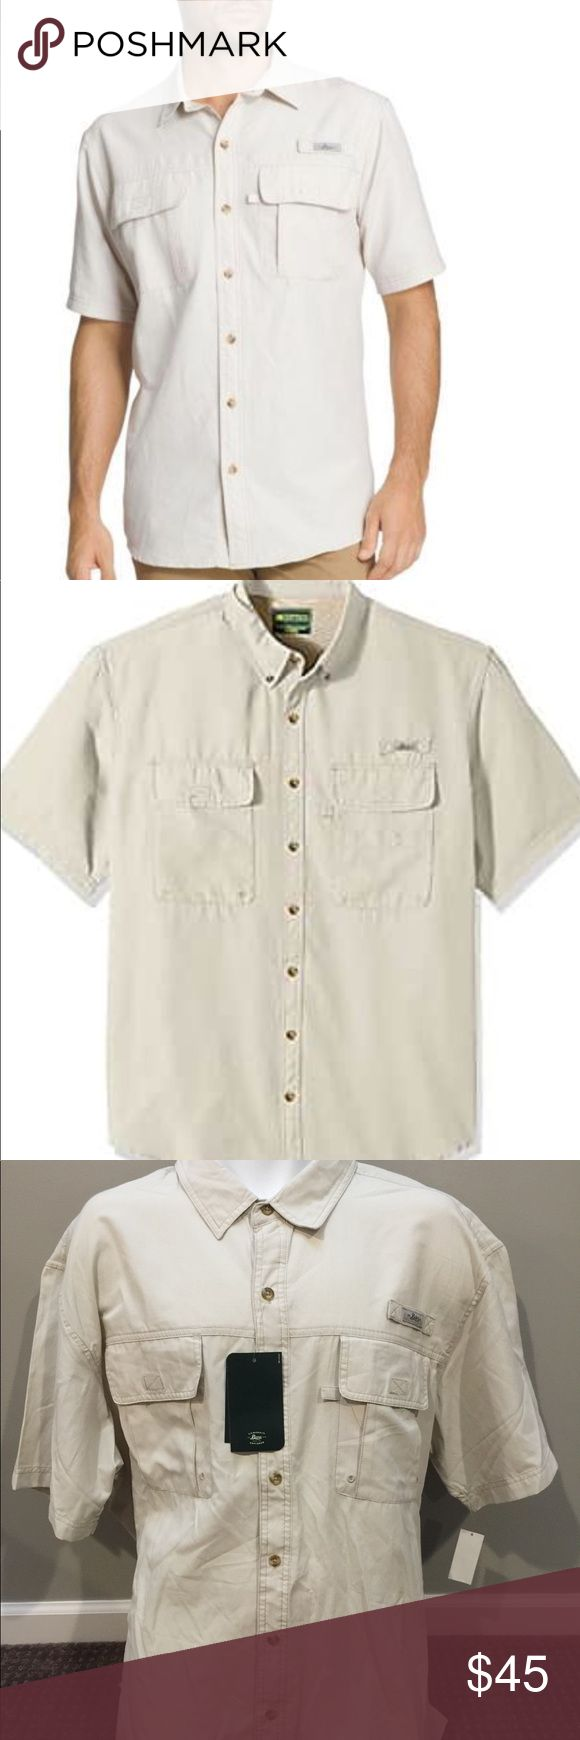 "GH Bass & Co silver birch explorer fishing shirt Solid cotton mix casual fishing shirt Velcro flap single pleat chest pockets Full button front with logo tag and short sleeves UPF 40 Sun Blocker and moisture wicking material  Measurements laying flat: Chest: 28""  Length down back: 34""  Condition:   New with tags!  Retail Price:   $68  Stock #:  AMR1-349 G.H. Bass & Co Shirts Casual Button Down Shirts"